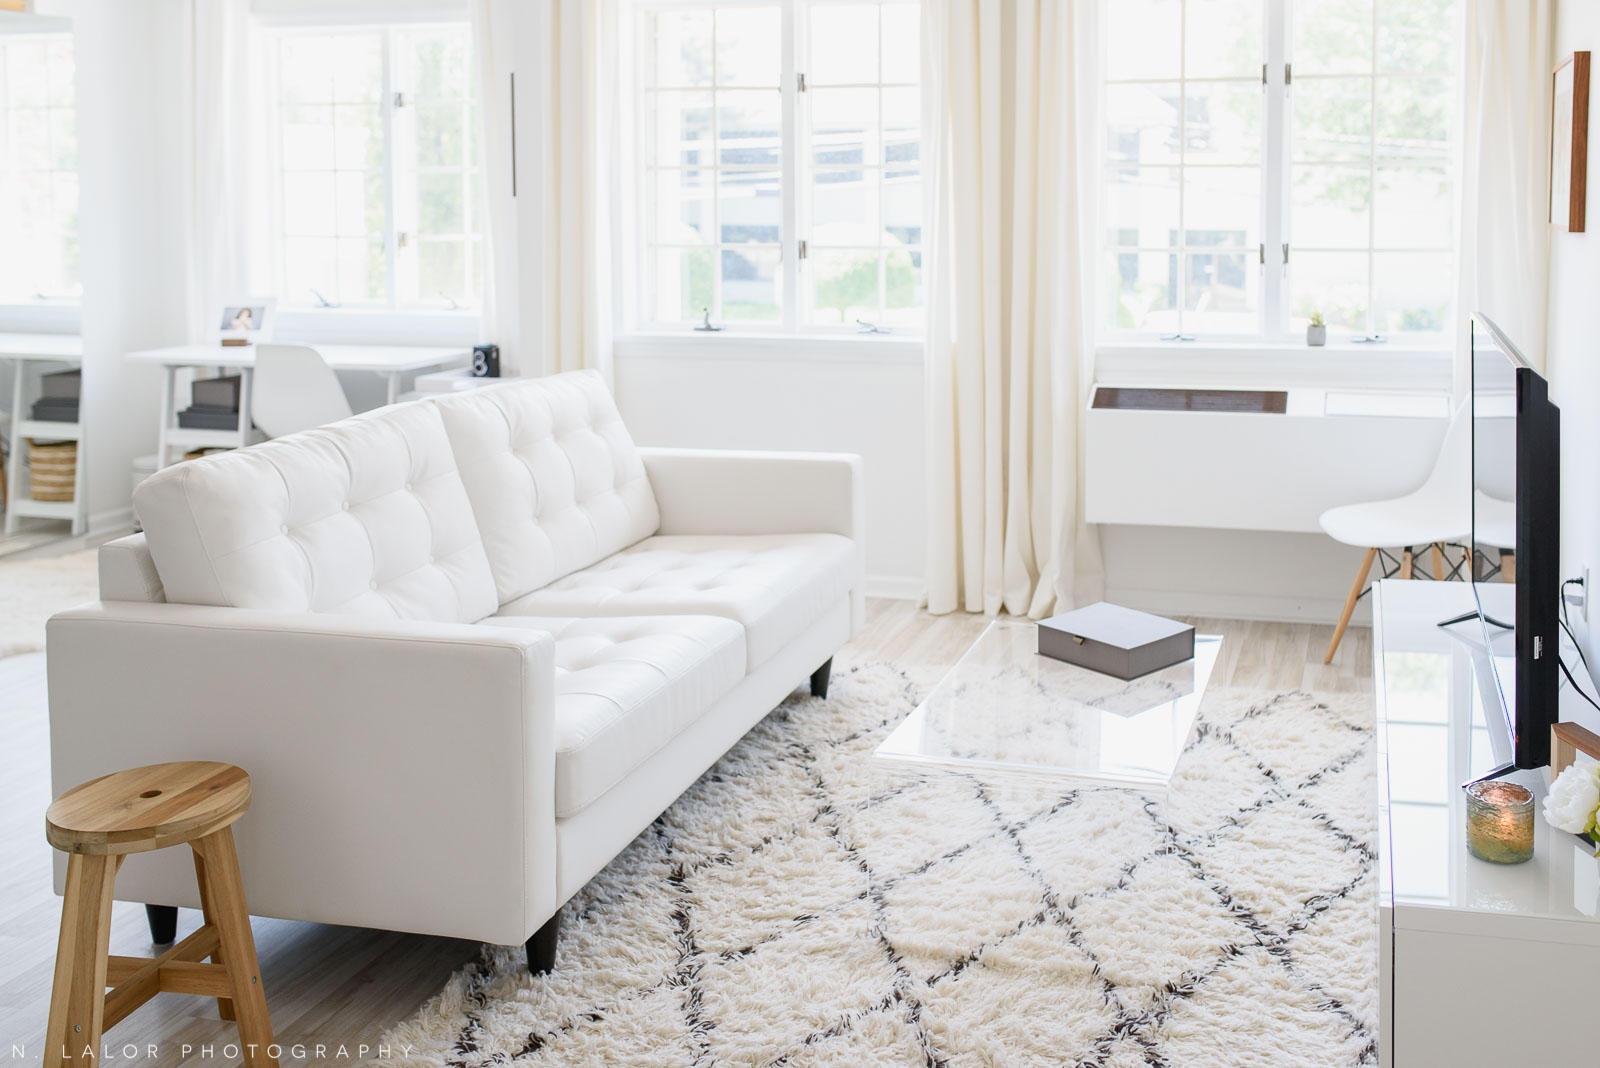 N. Lalor Photography Studio - client meeting area with white couch and coffee table.